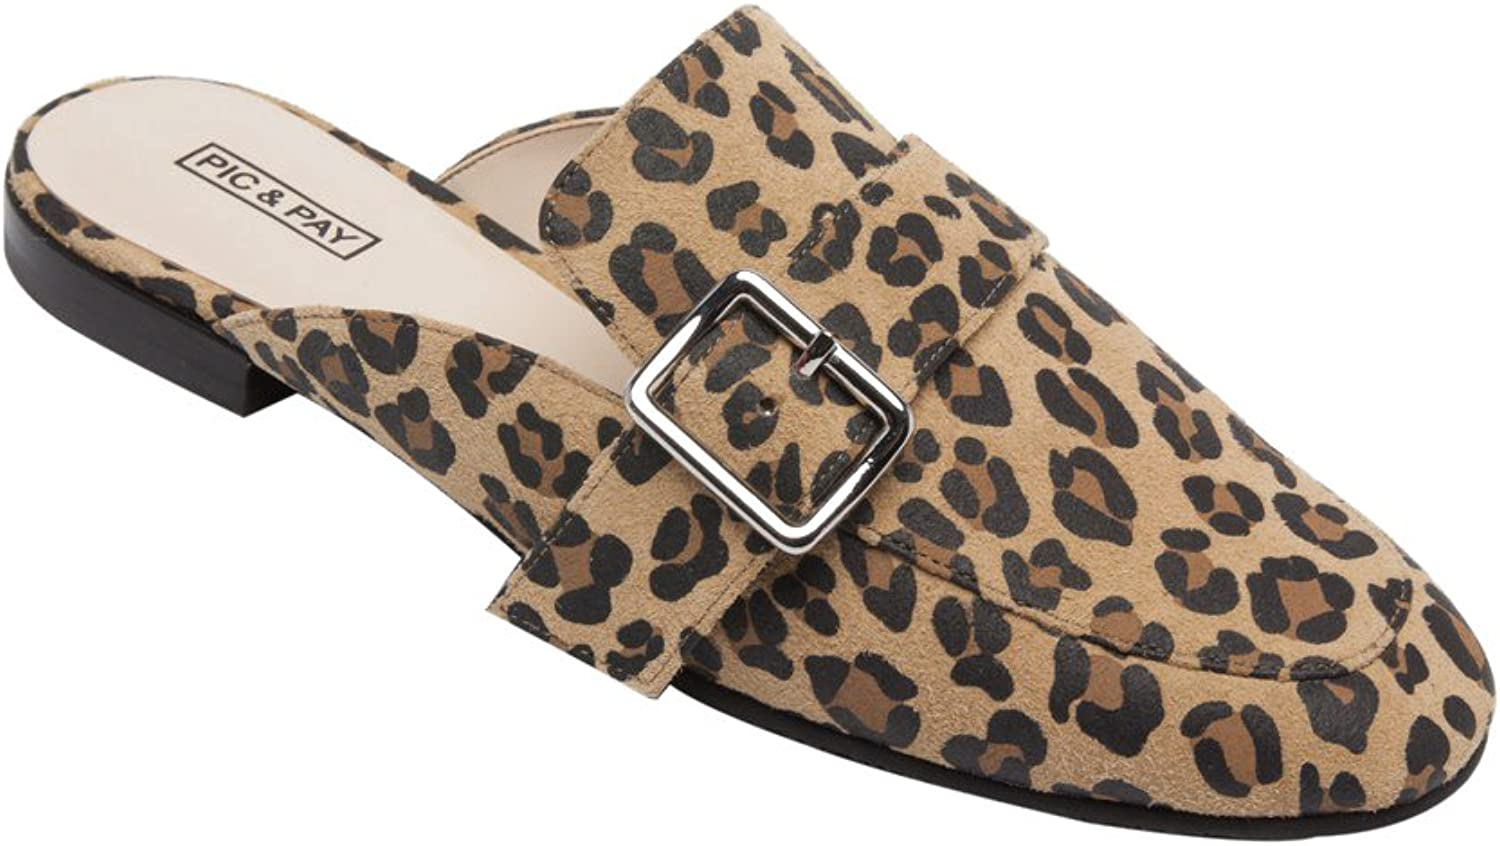 PIC PAY Dacia - Women's Leather Buckle Mule - Backless Slip-on Flat Leather Loafer Tan Black Leopard Suede 5.5M